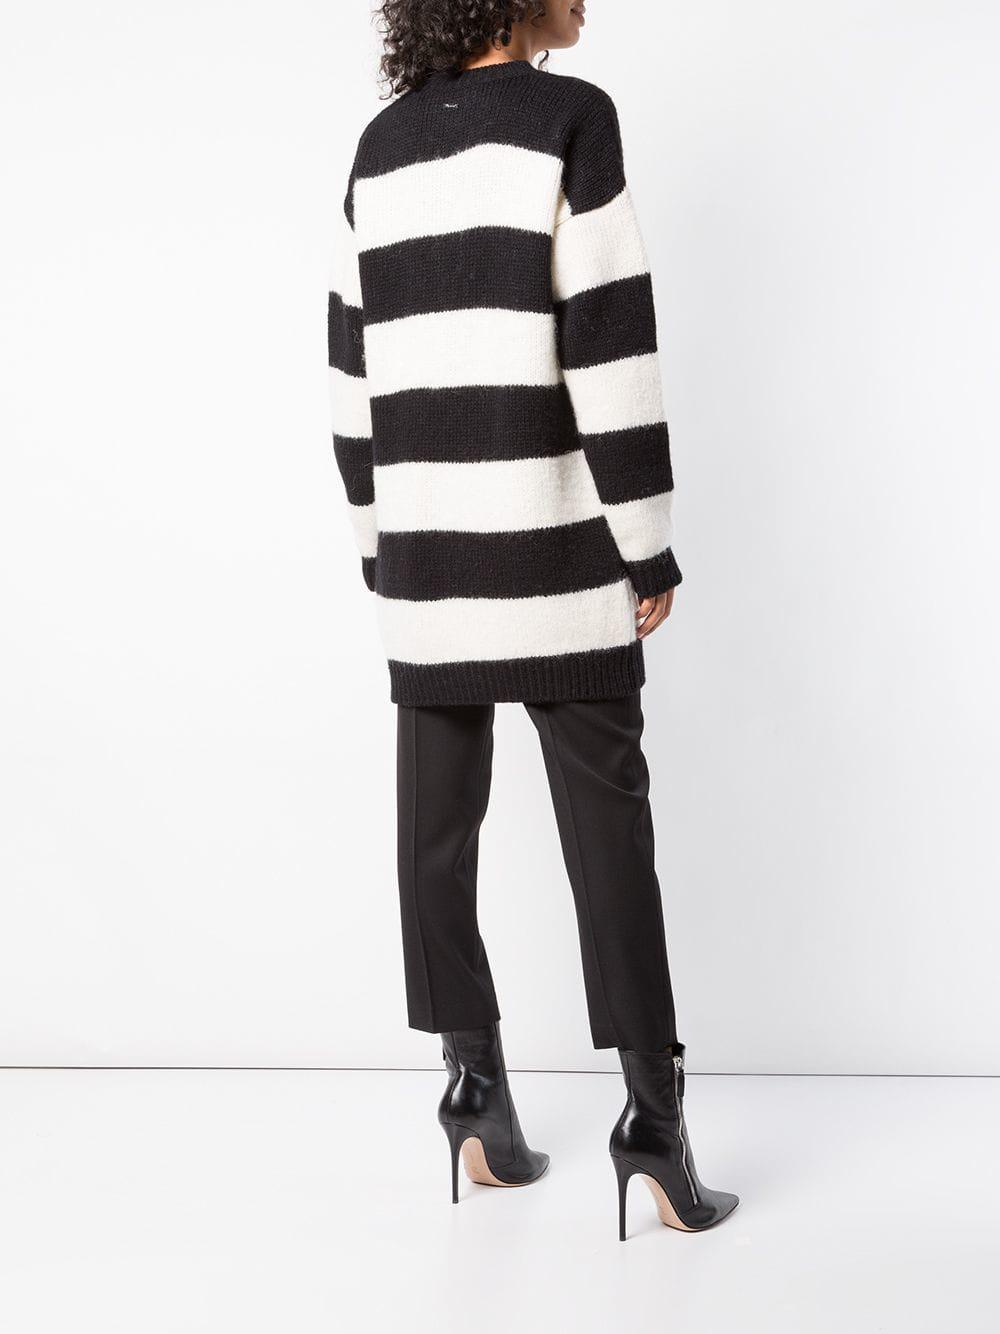 DSquared² - Black Oversized Knitted Striped Sweater - Lyst. View fullscreen 7e0ca57f3